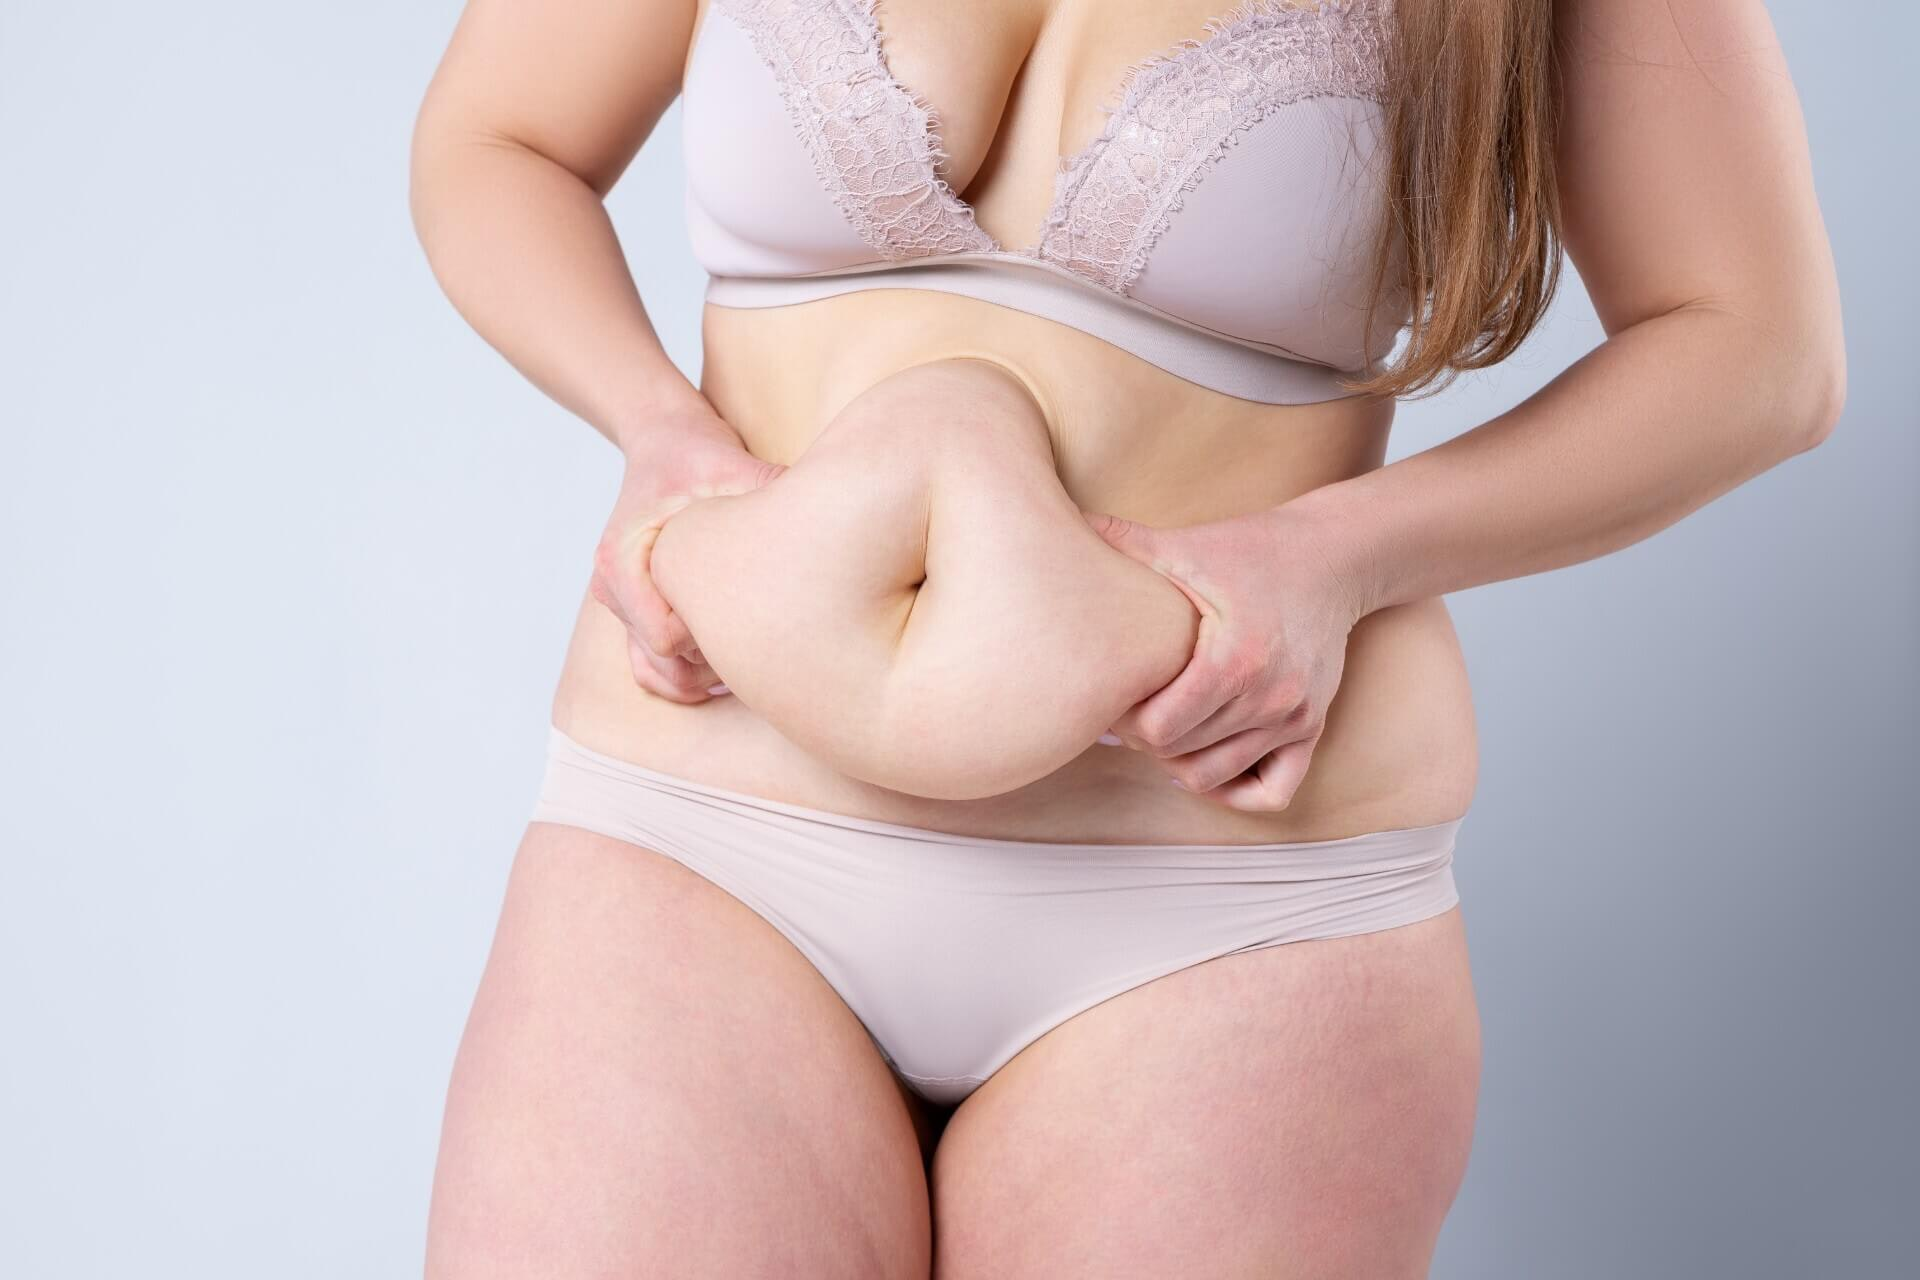 Woman grabbing her belly